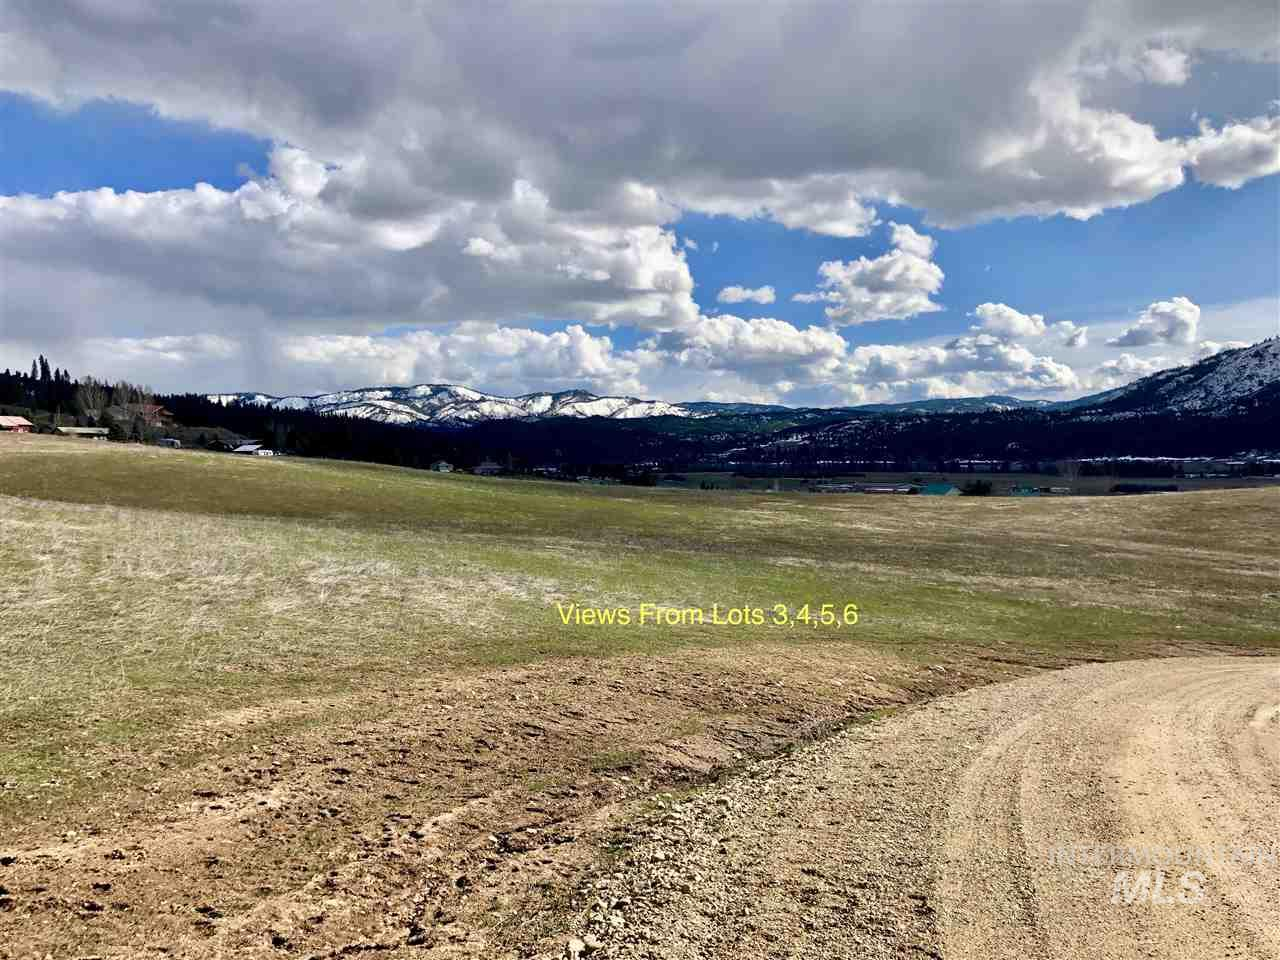 TBD 8 Banks Lowman Rd, Garden Valley, Idaho 83622, Land For Sale, Price $149,500, 98716394